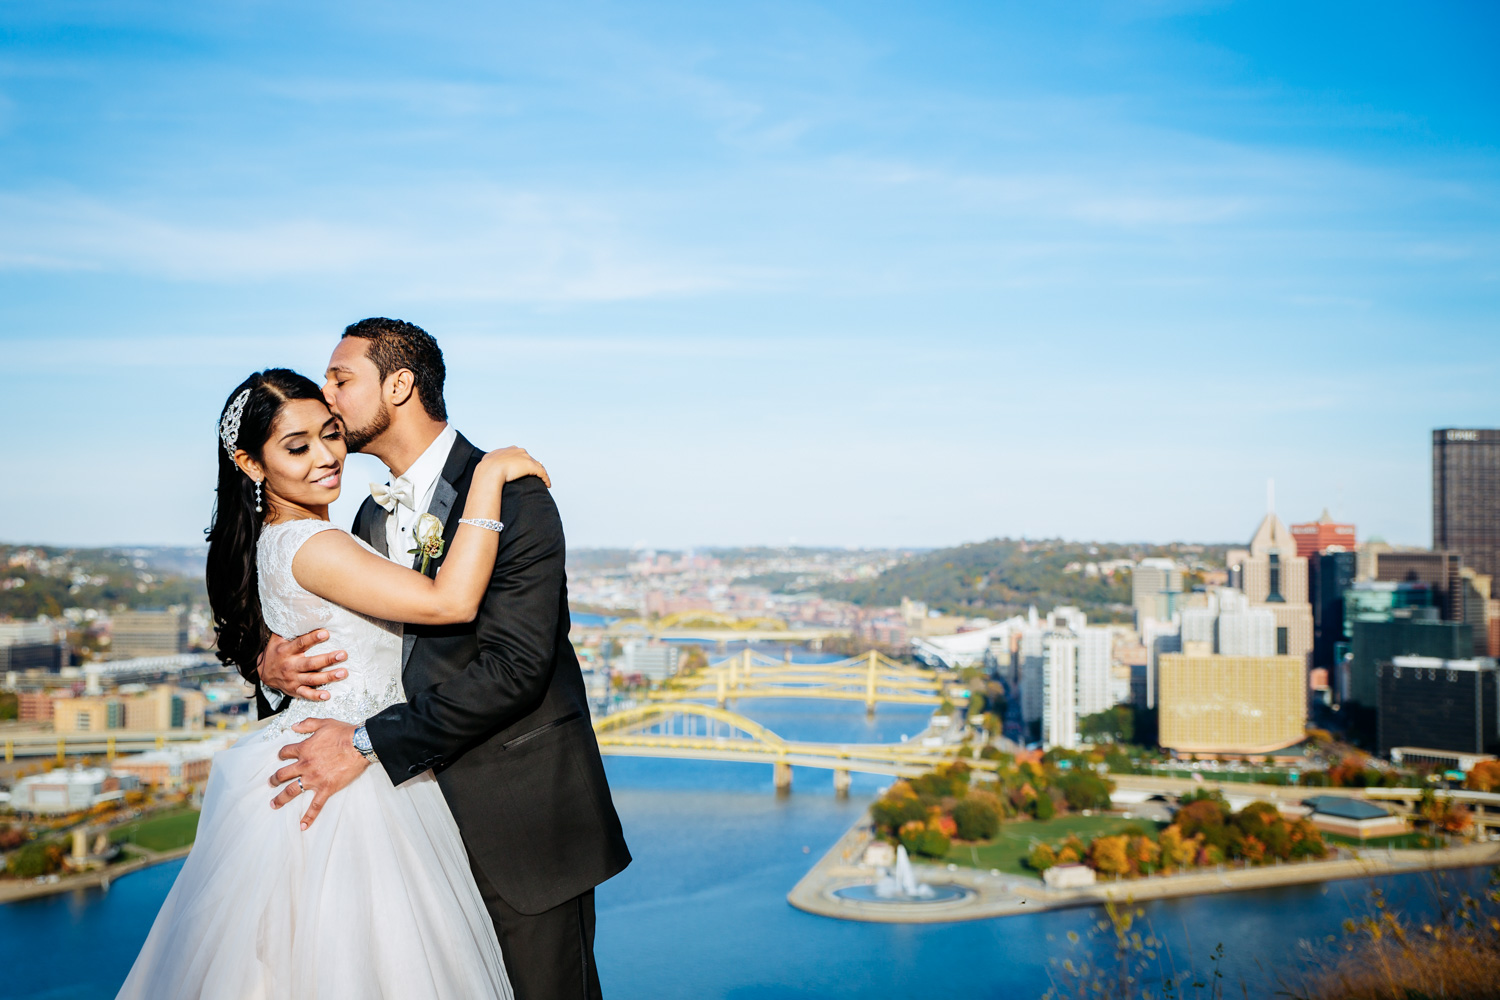 wedding-photos-on-mt-washington-with-reception-at-nearby-lemont-manny-pittsburgh-modern-wedding-photographer